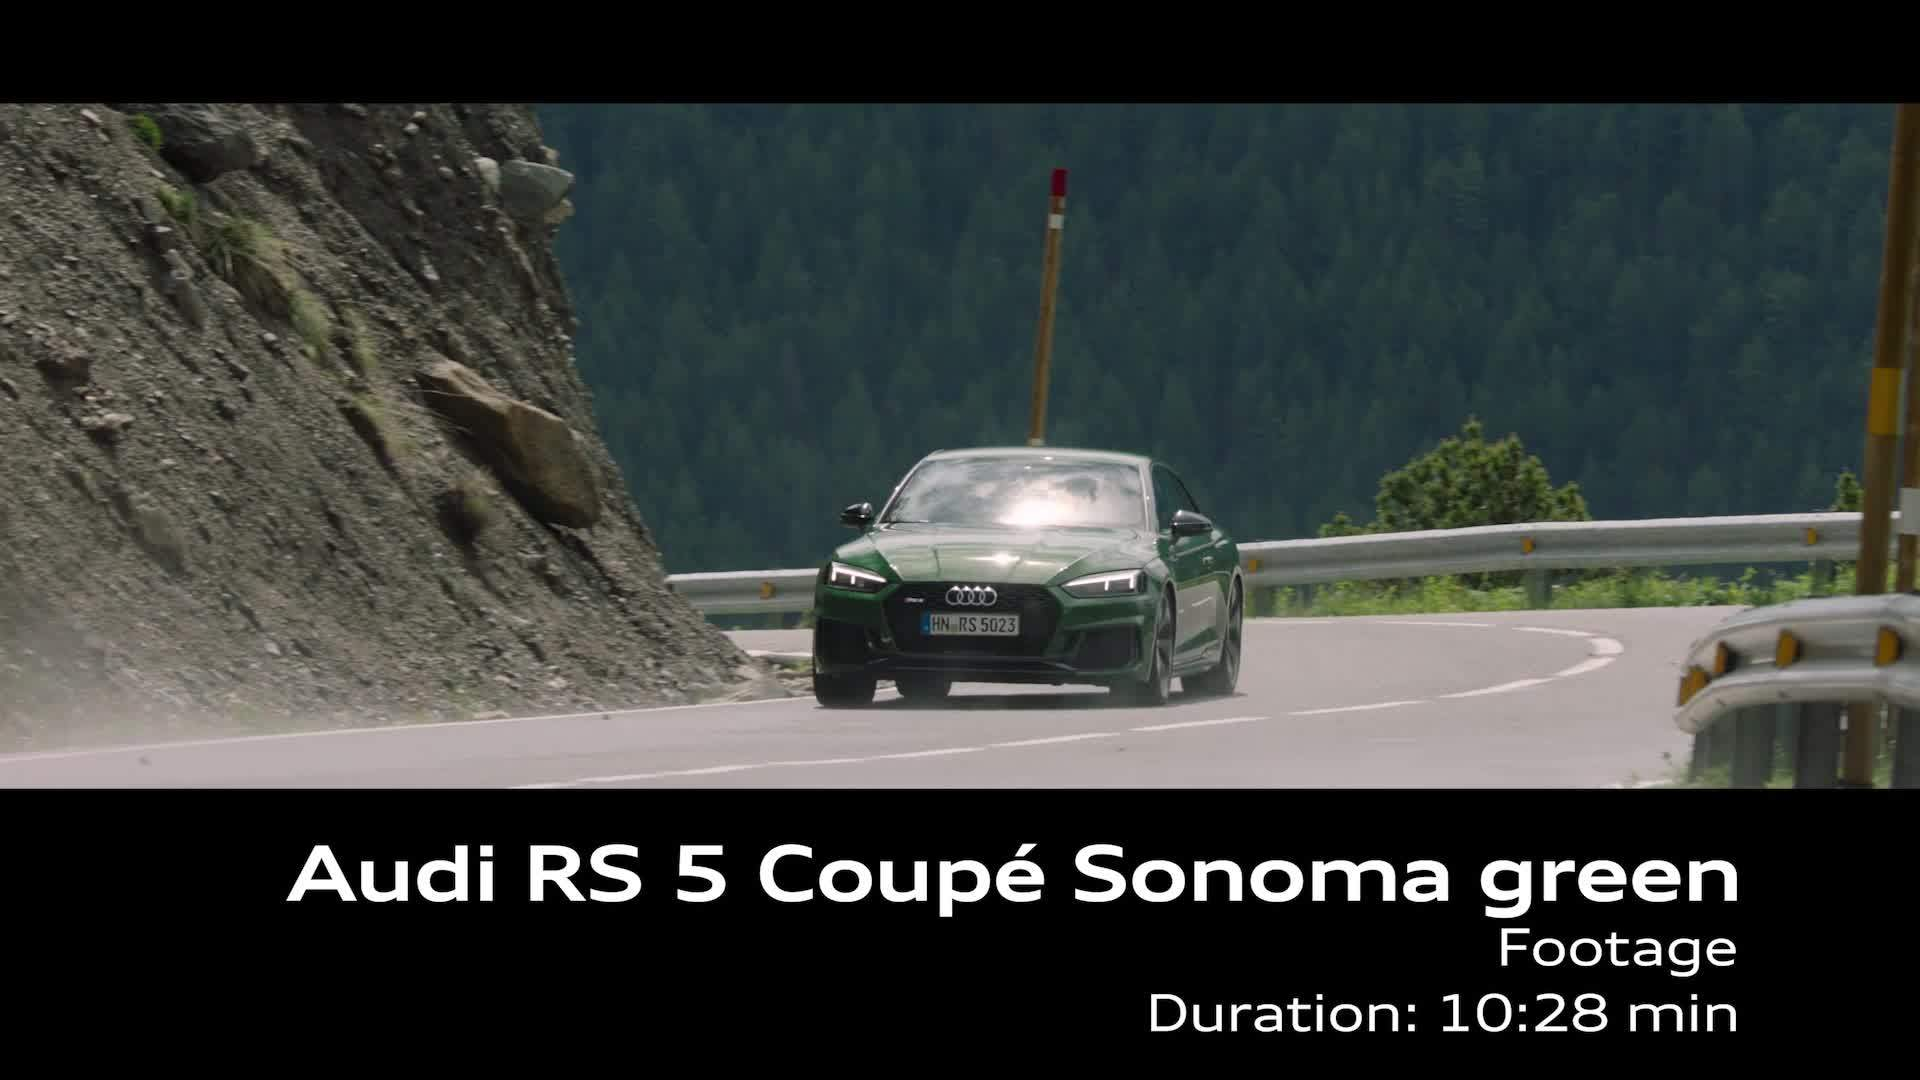 Audi RS 5 Coupé Sonoma green - Footage on Location Andorra